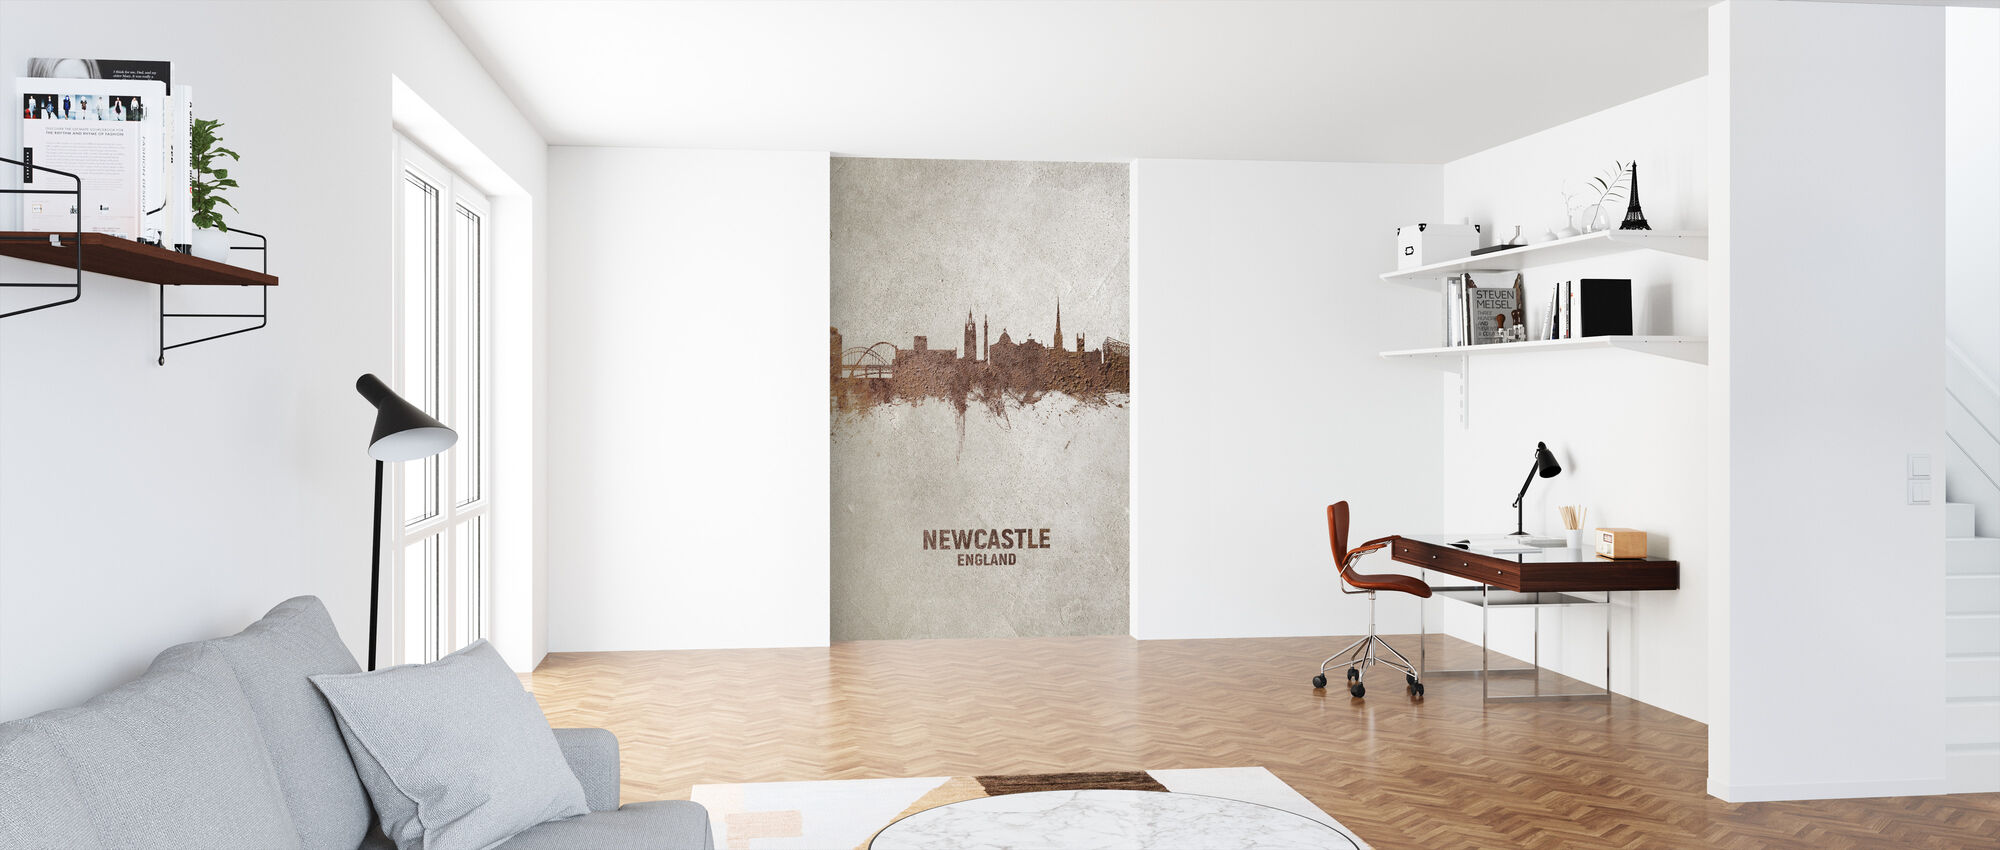 Newcastle England Rust Skyline - Wallpaper - Office